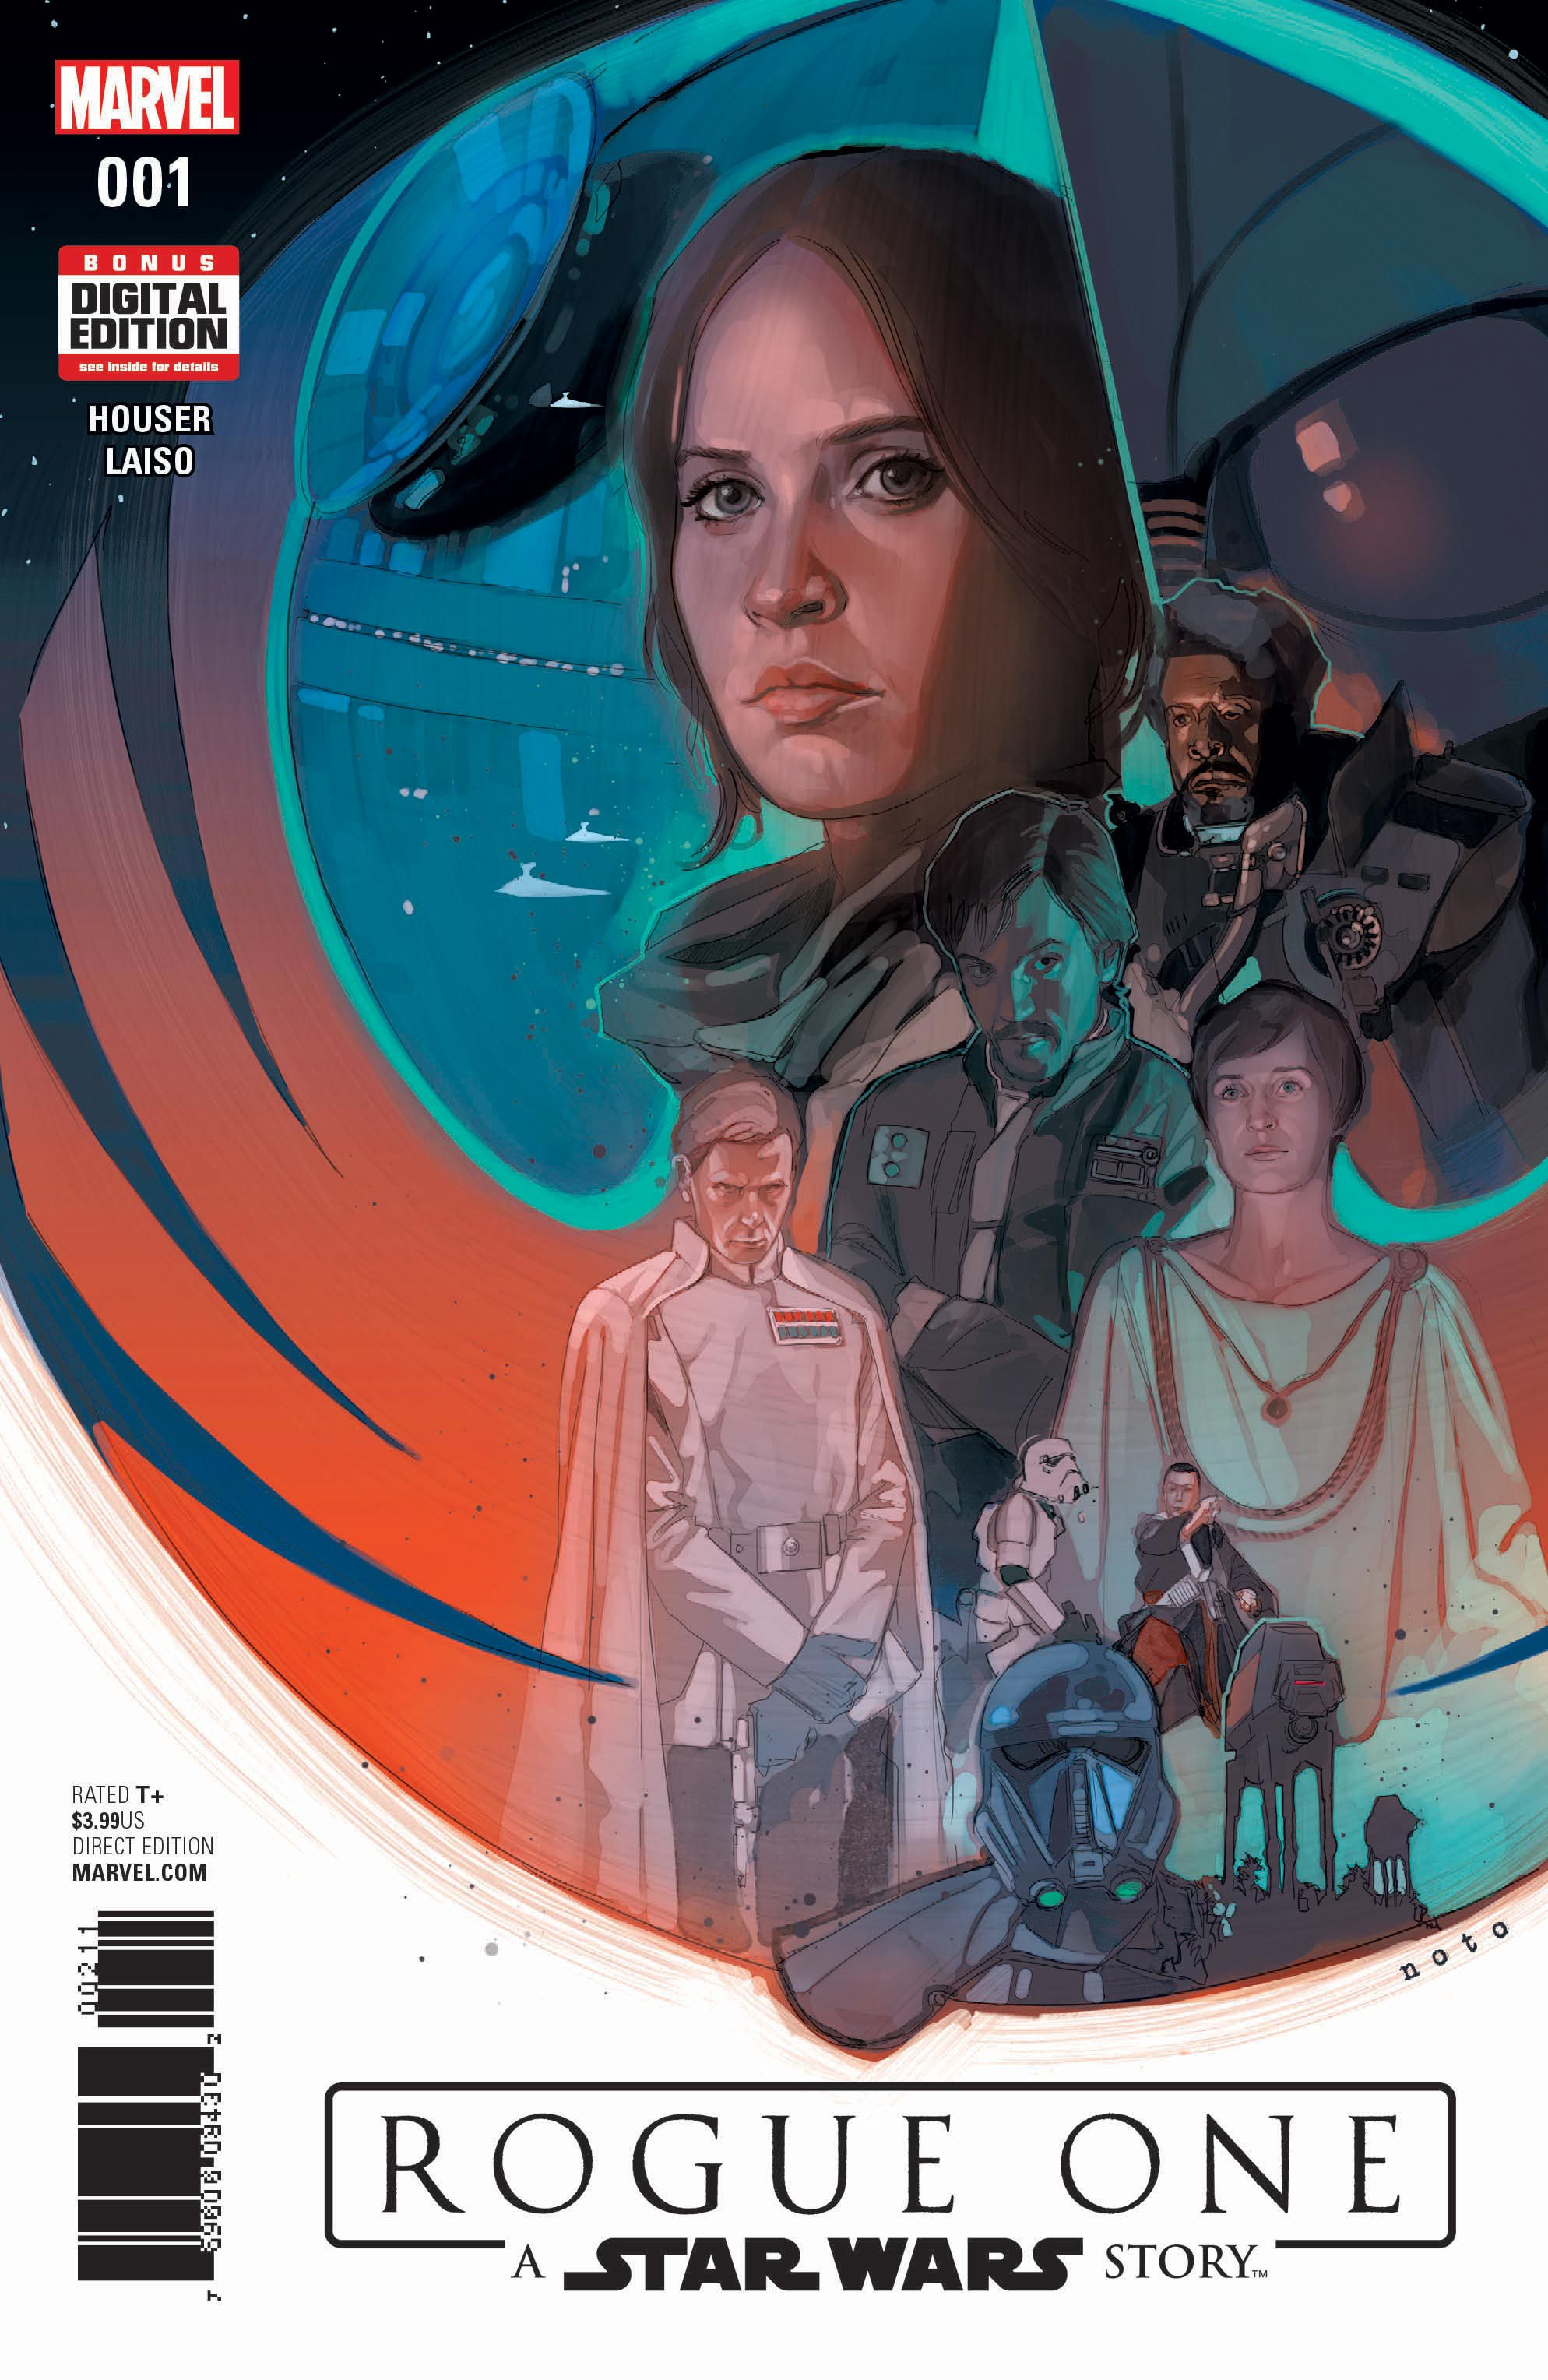 201701_rogue one marvel comic (1)